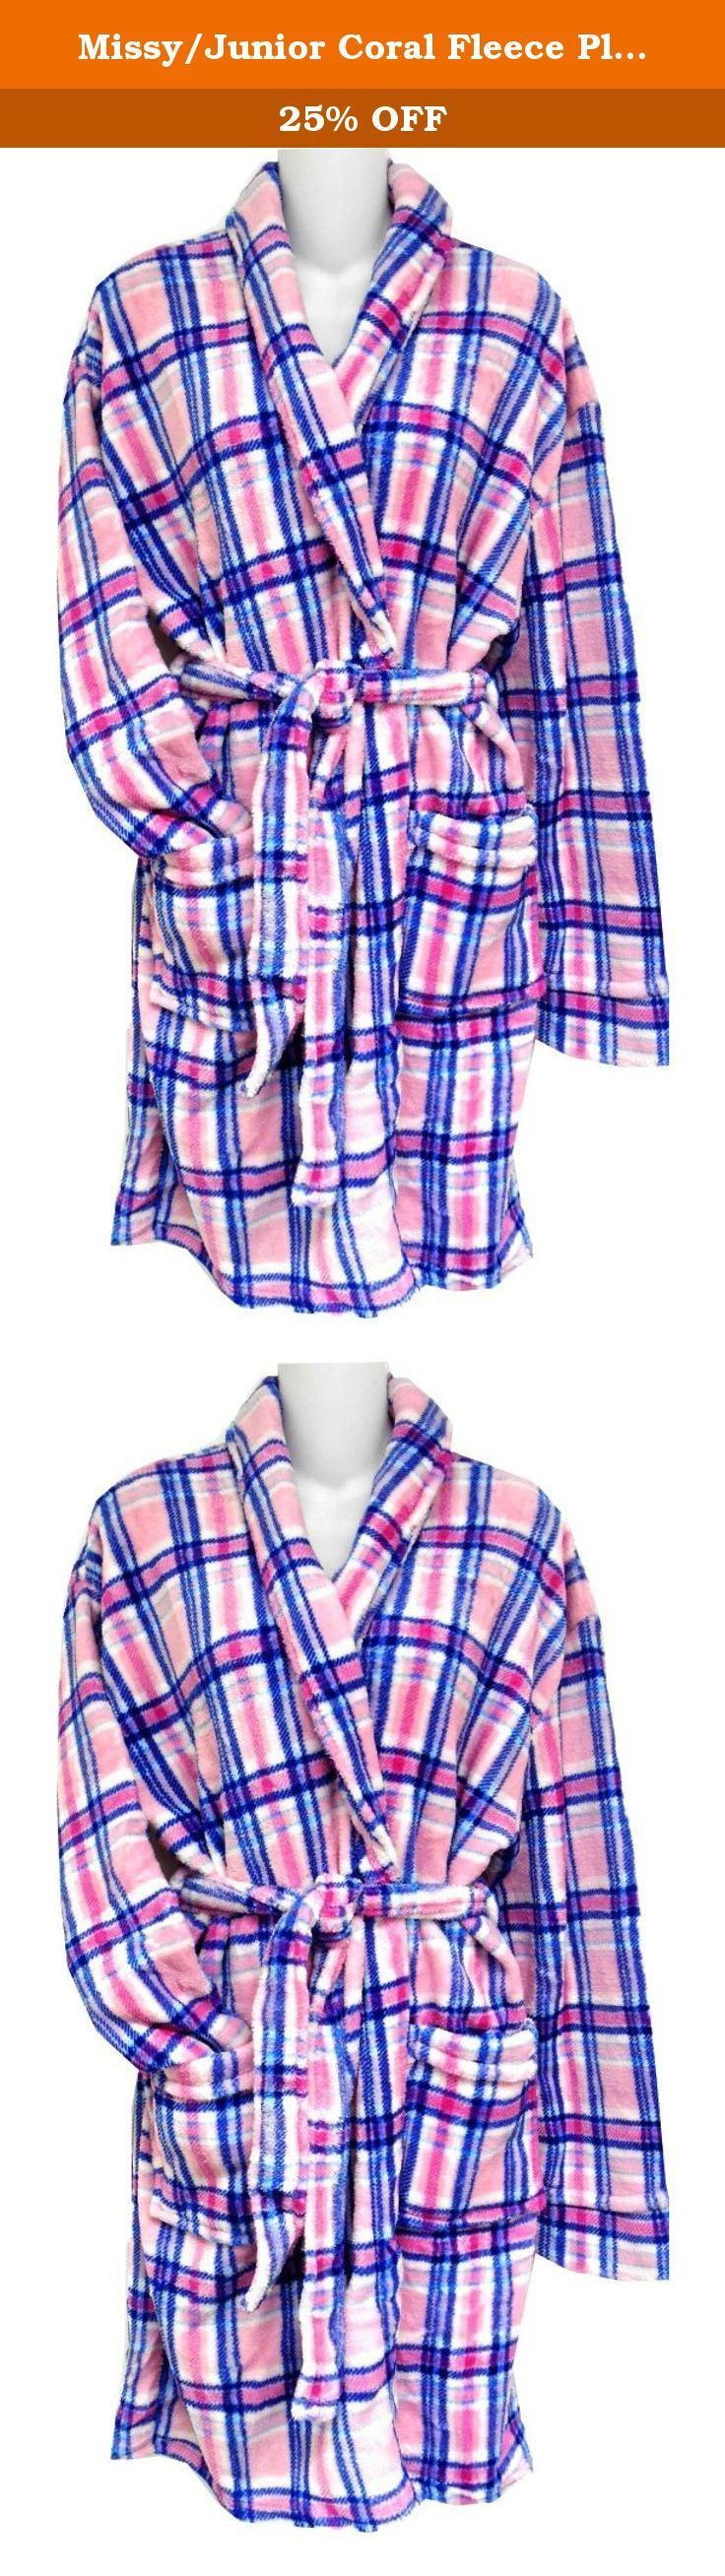 Missy/Junior Coral Fleece Plaid Robe White/Pink/Blue LG. Soft Fluffy Ladies Belted Robe with Shawl Collar Patch Pockets. Knee Length SM-XL.